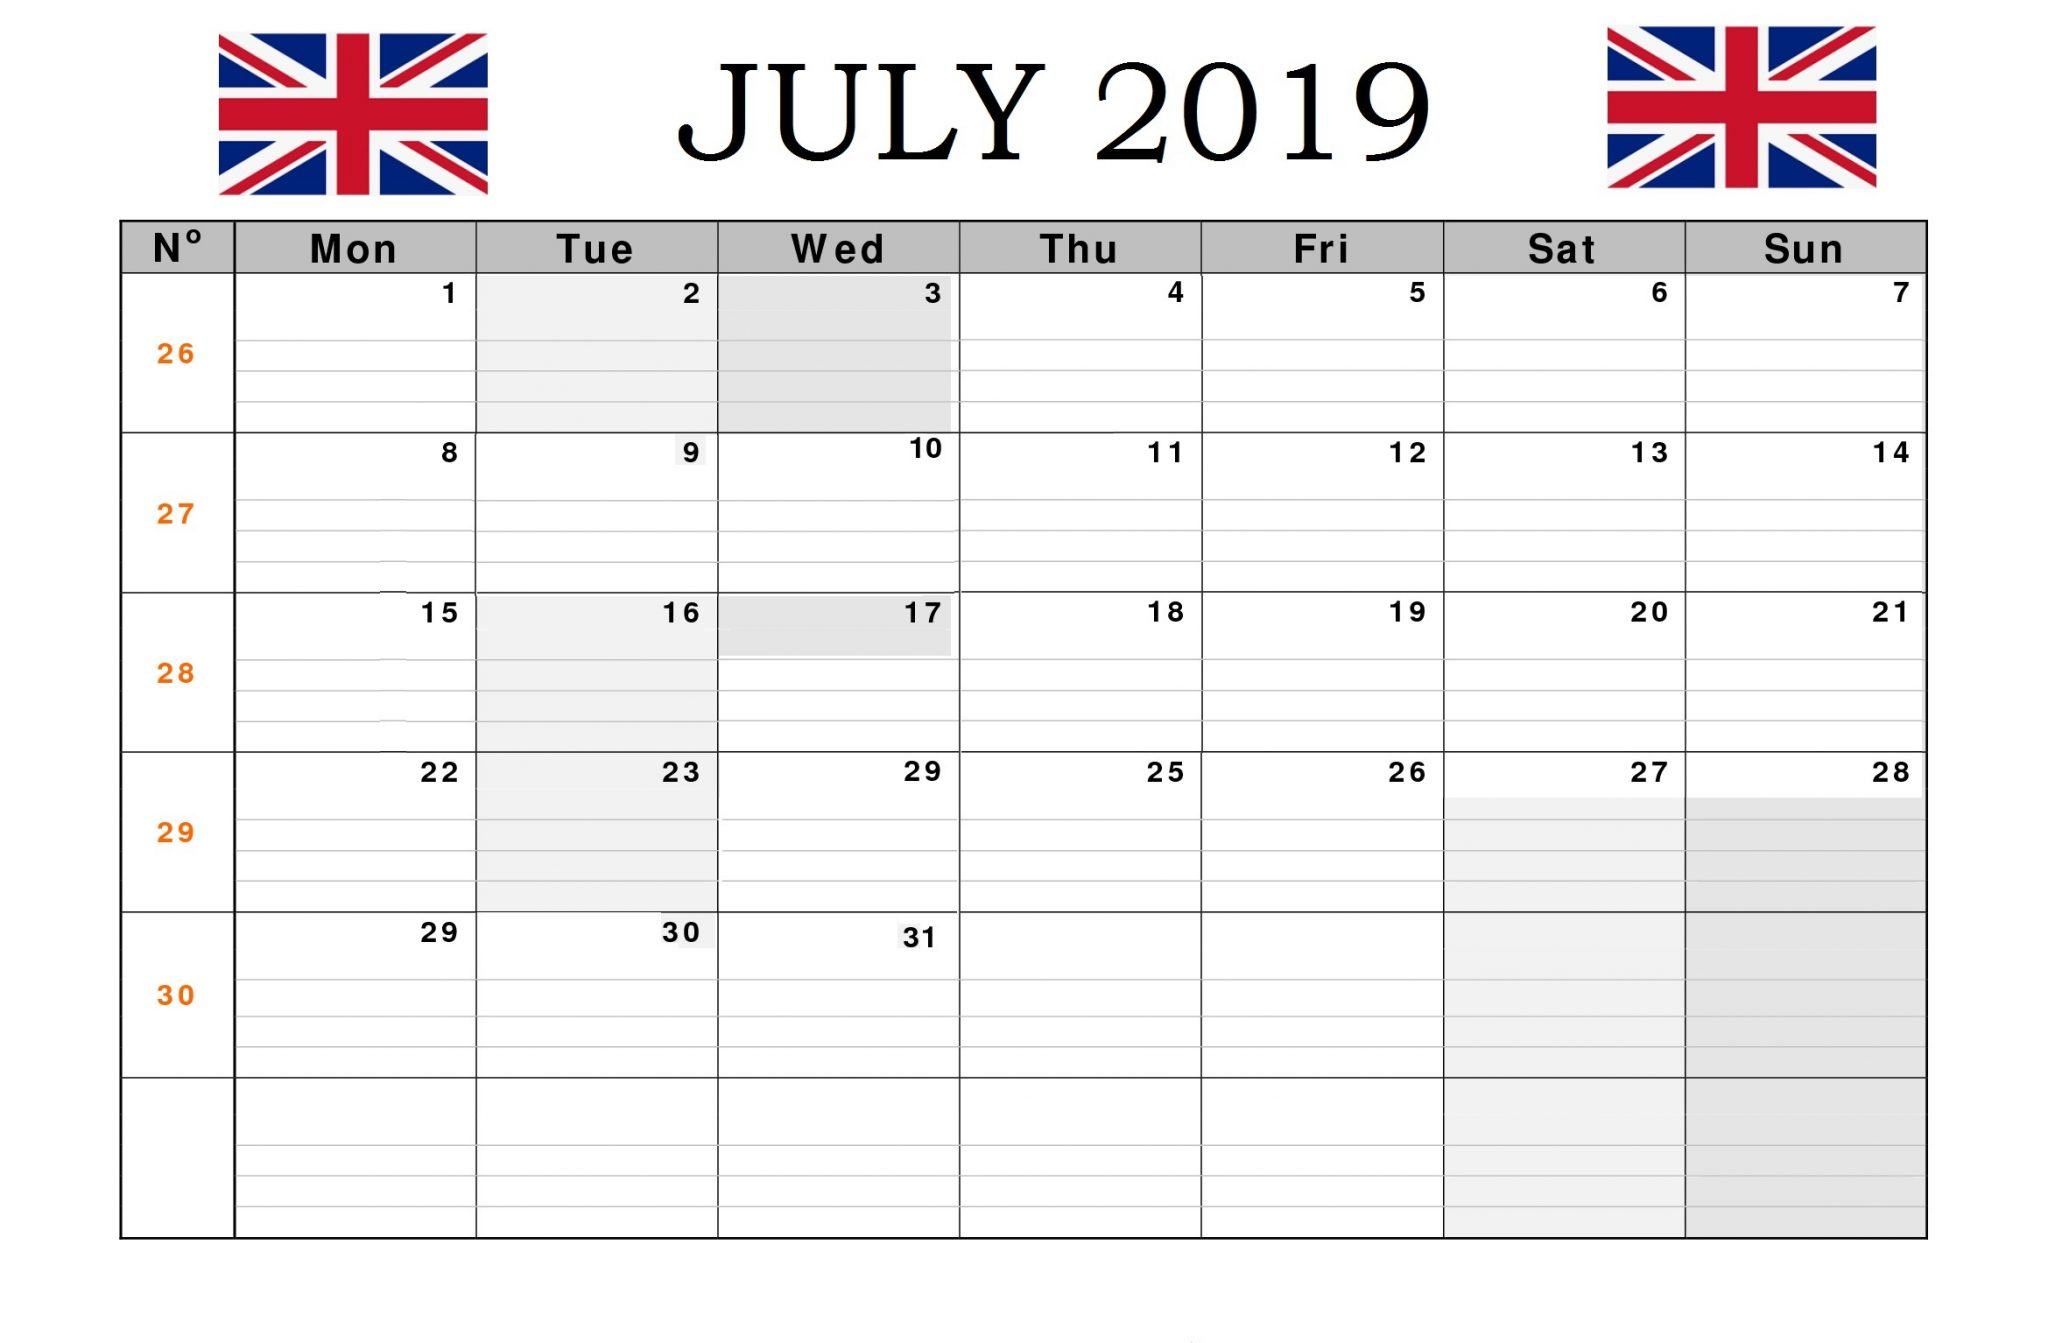 July 2019 UK Bank Holidays Calendar